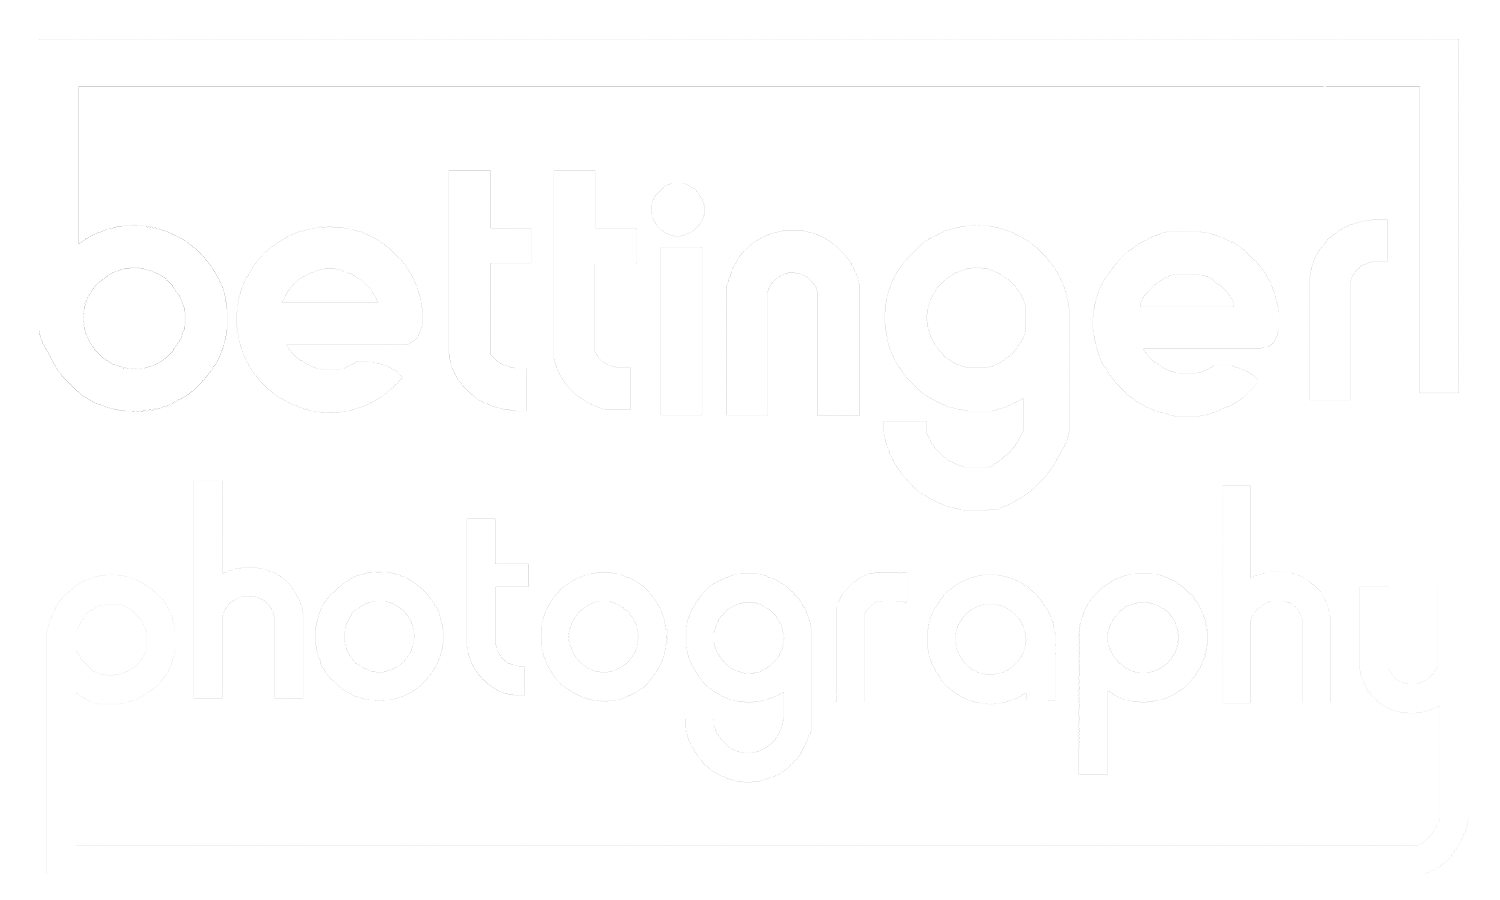 Bettinger Photography